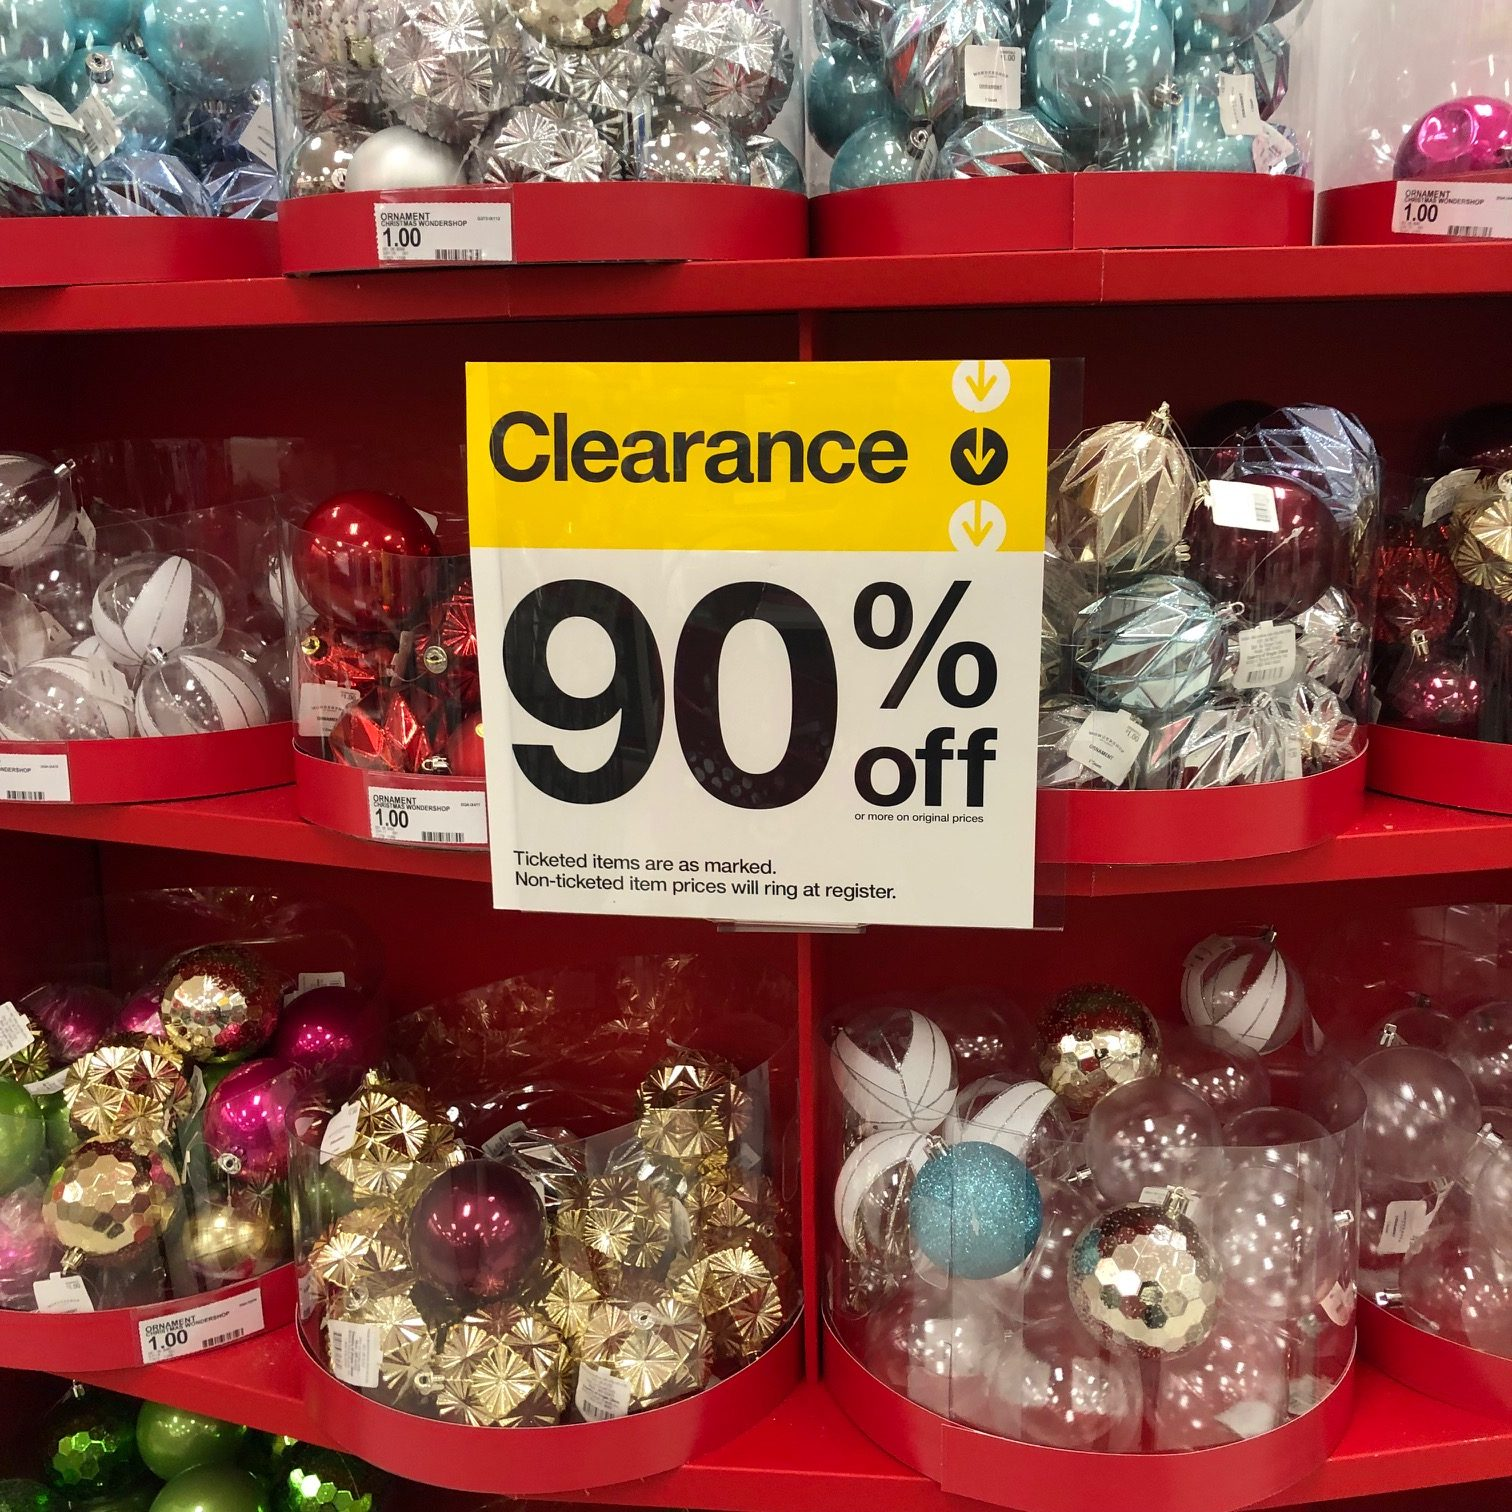 Target Christmas Clearance is 90% Off